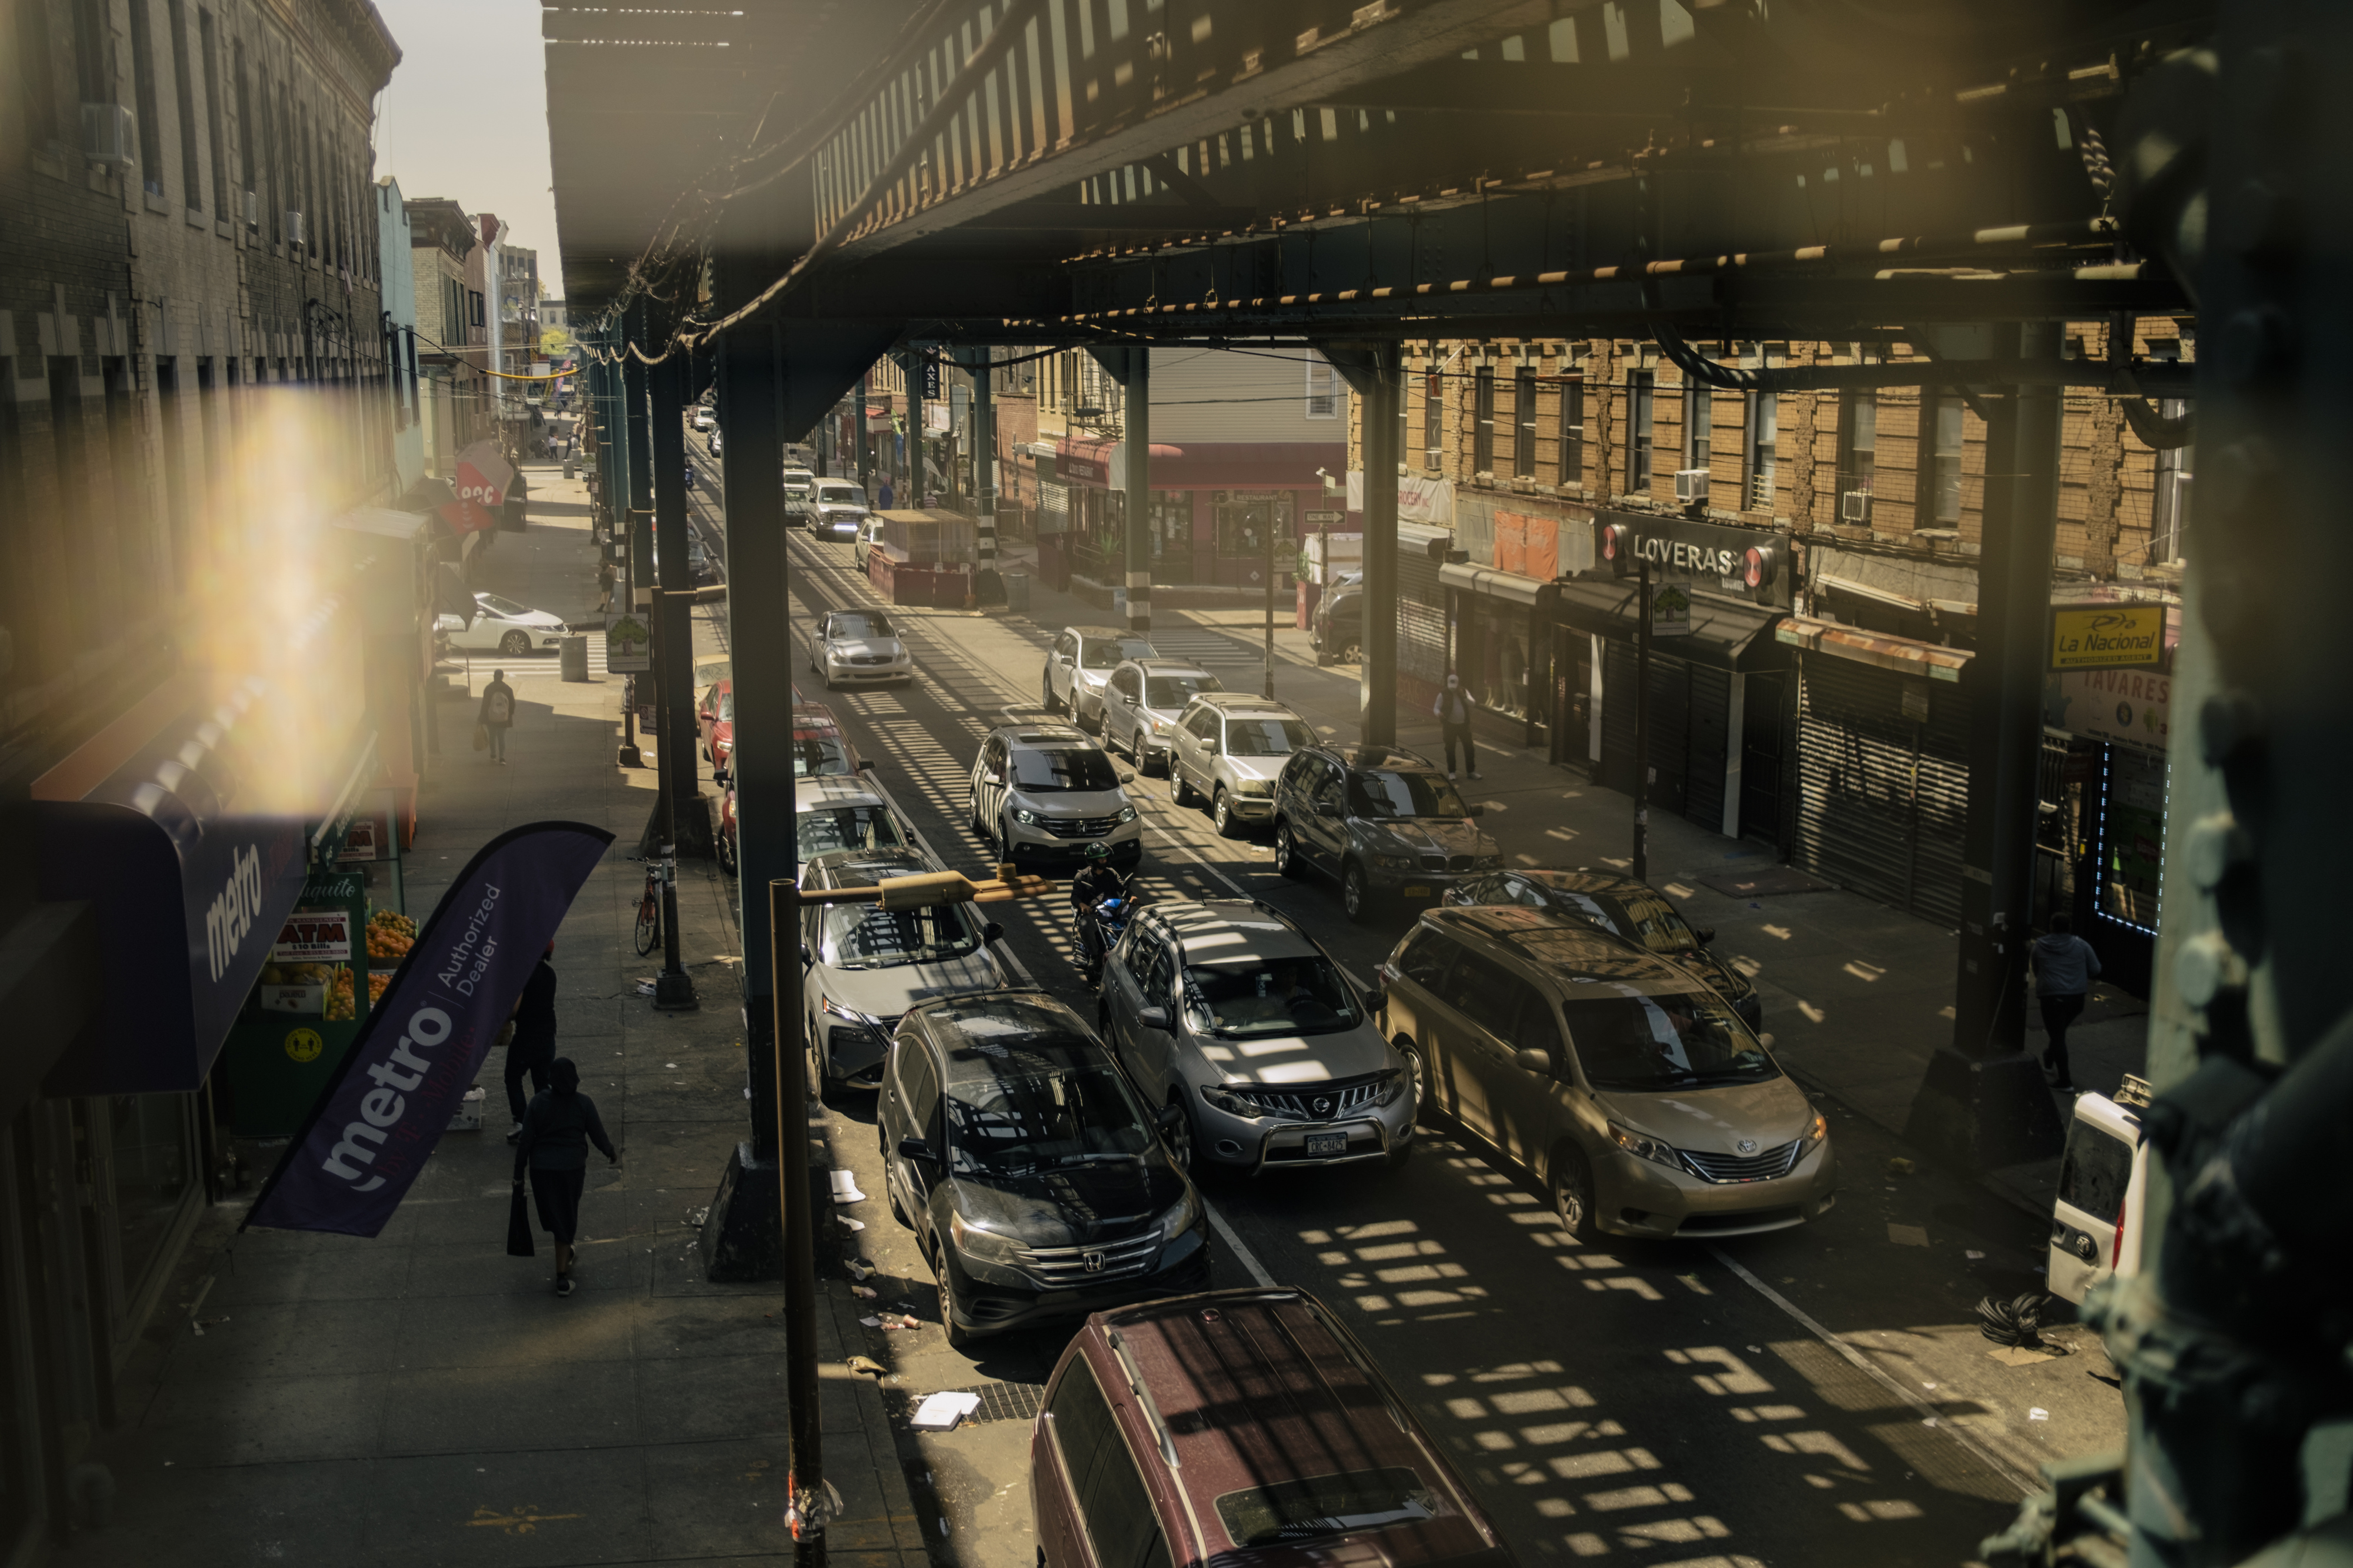 A bustling street in Cypress Hills, Brooklyn, with traffic moving under a subway track and shadows lining the street.